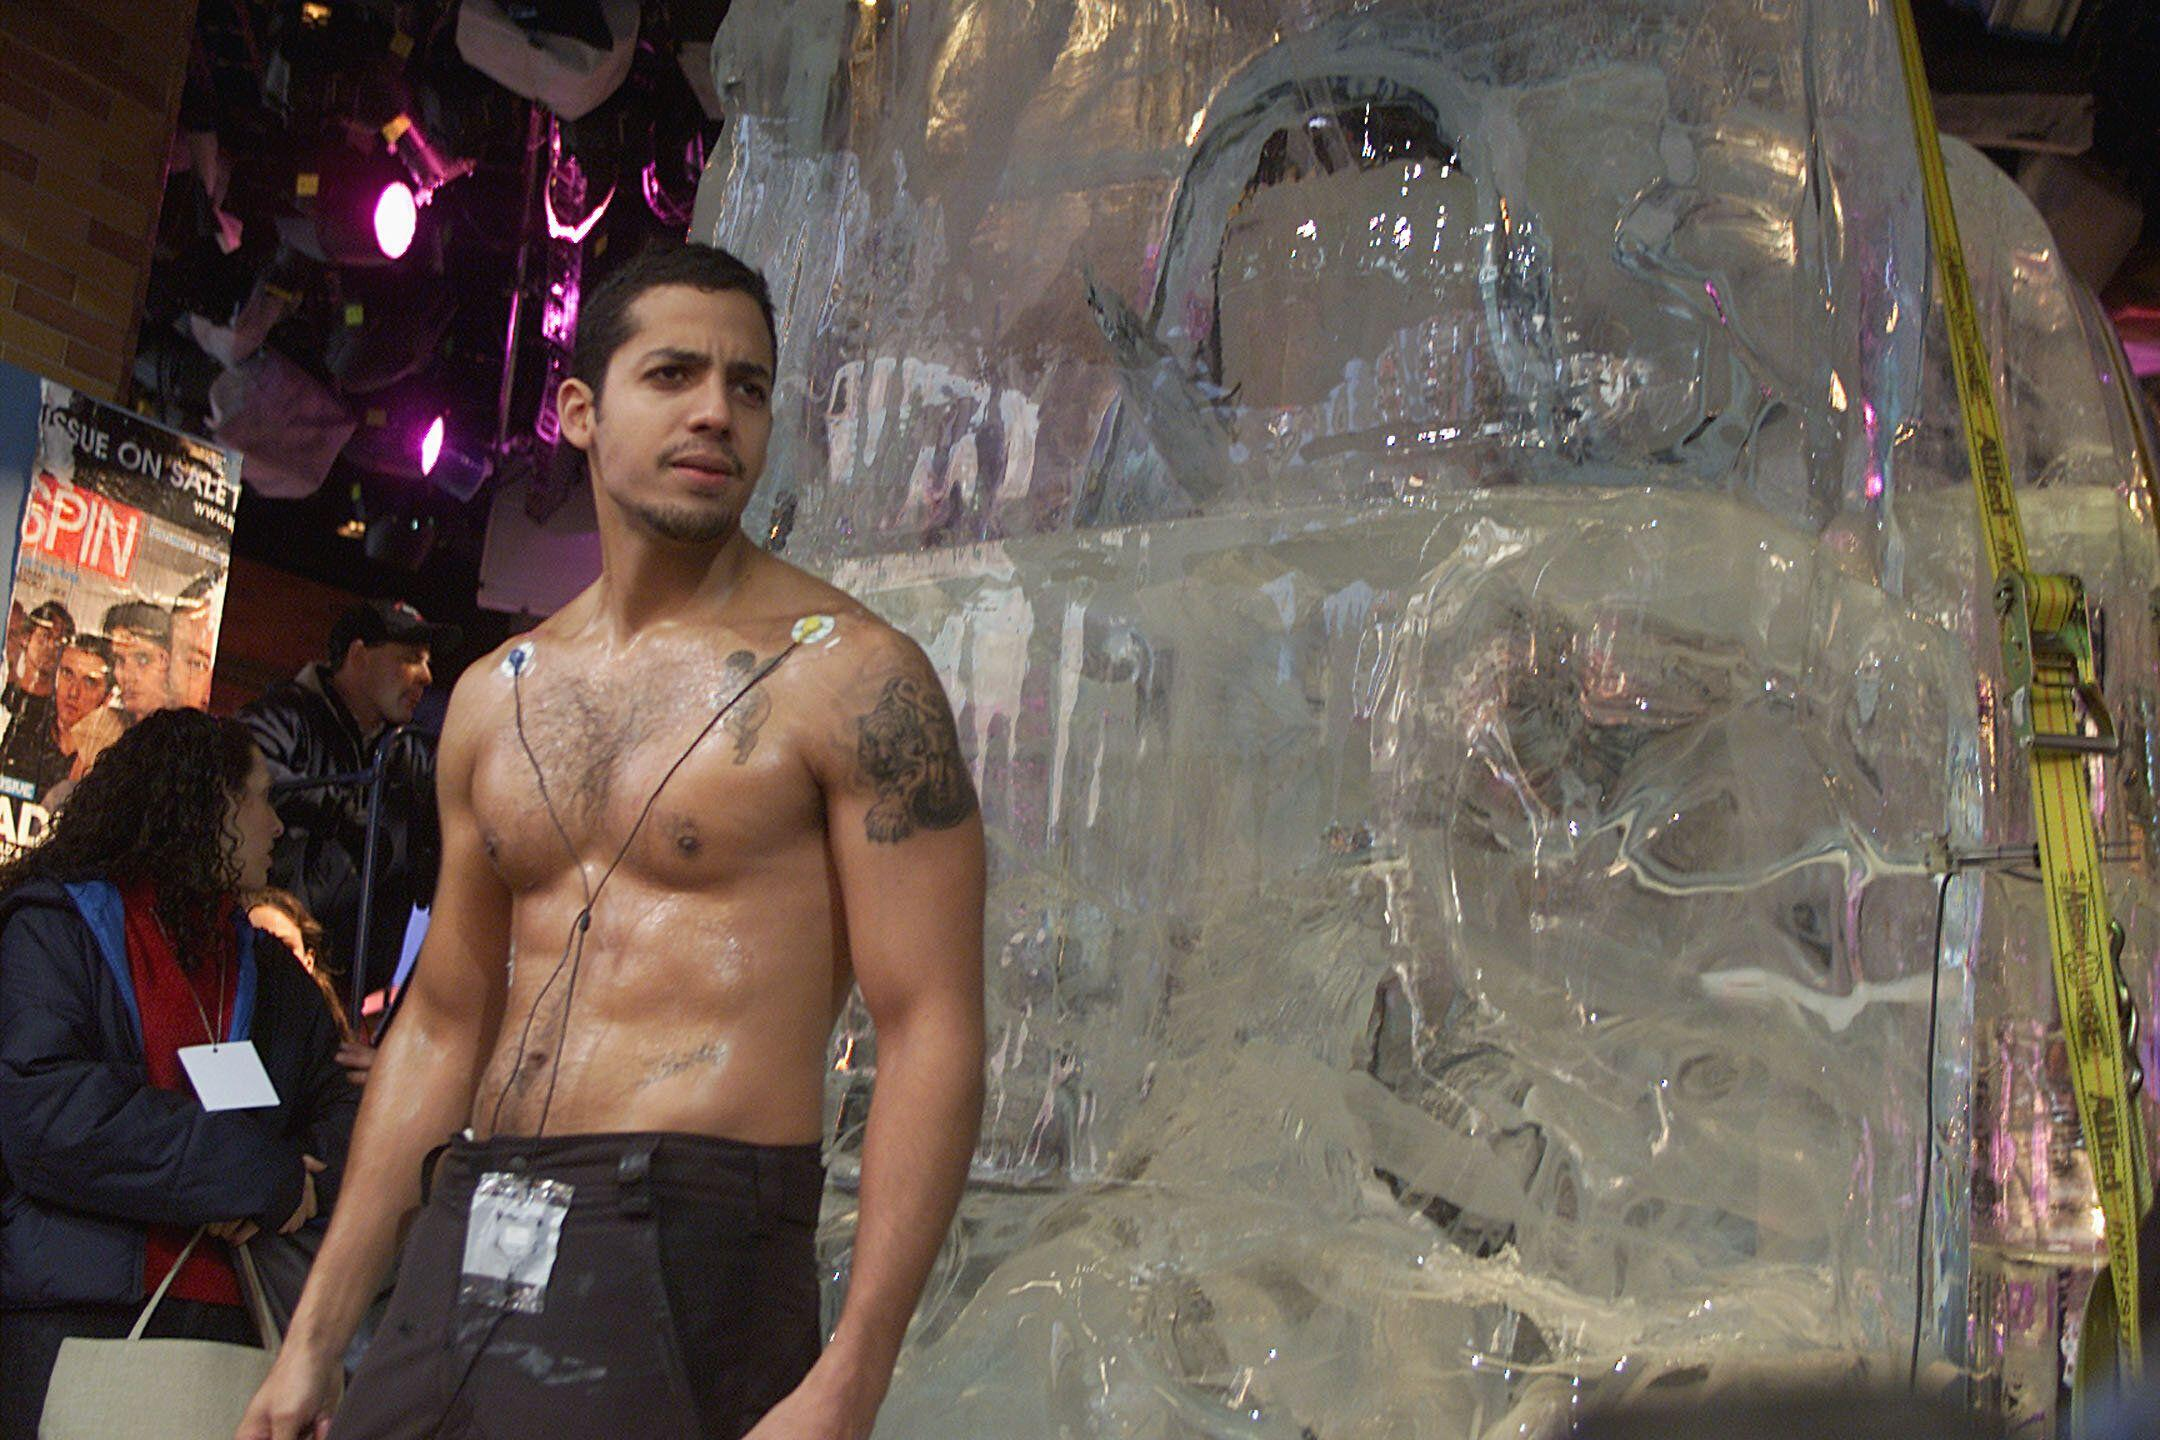 Magician David Blaine before getting frozen in a block of ice for 58 hours in Times Square in New York City. 11/27/00 Photo: Scott Gries/ImageDirect